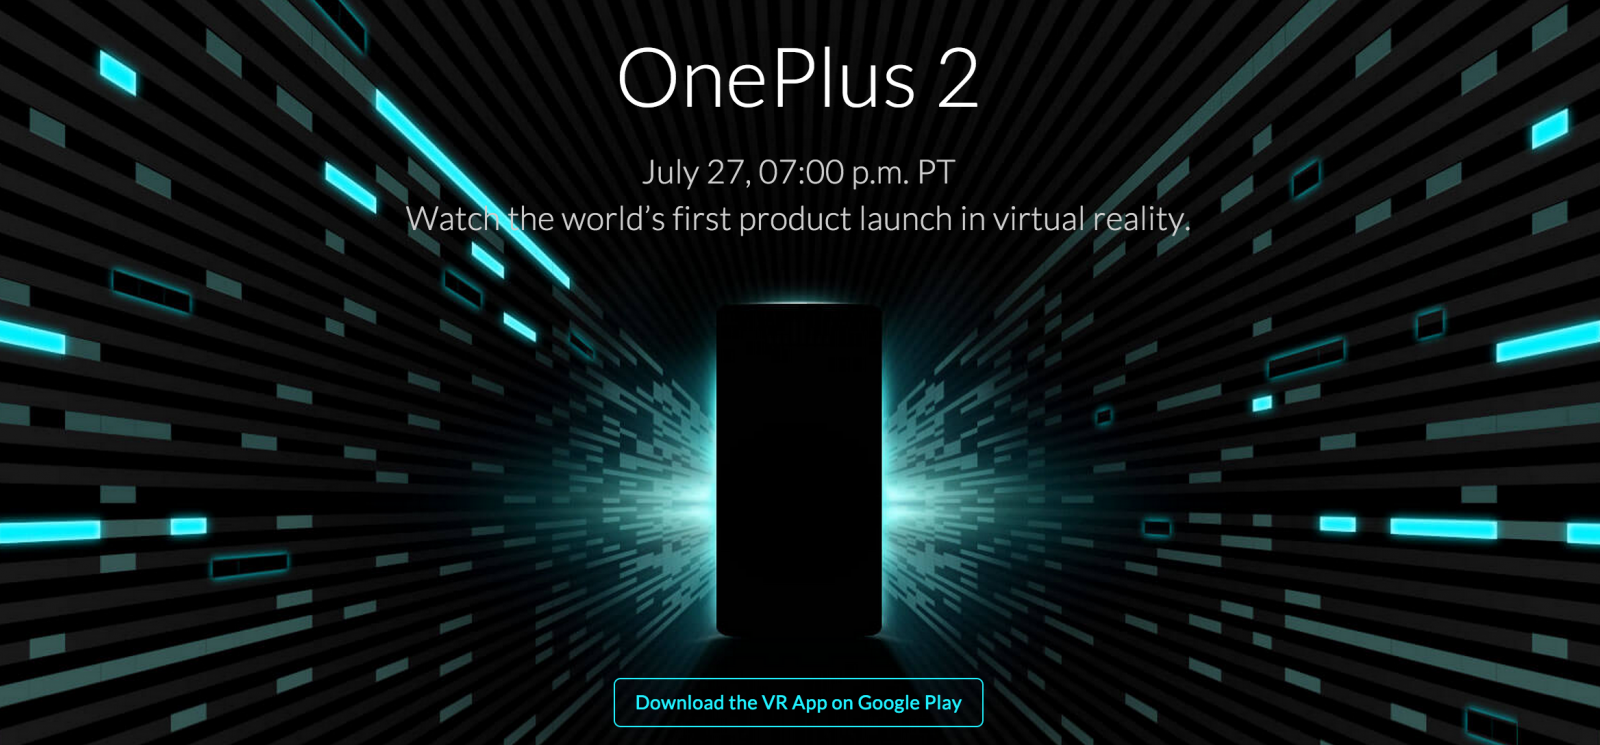 OnePlus 2 launch live stream